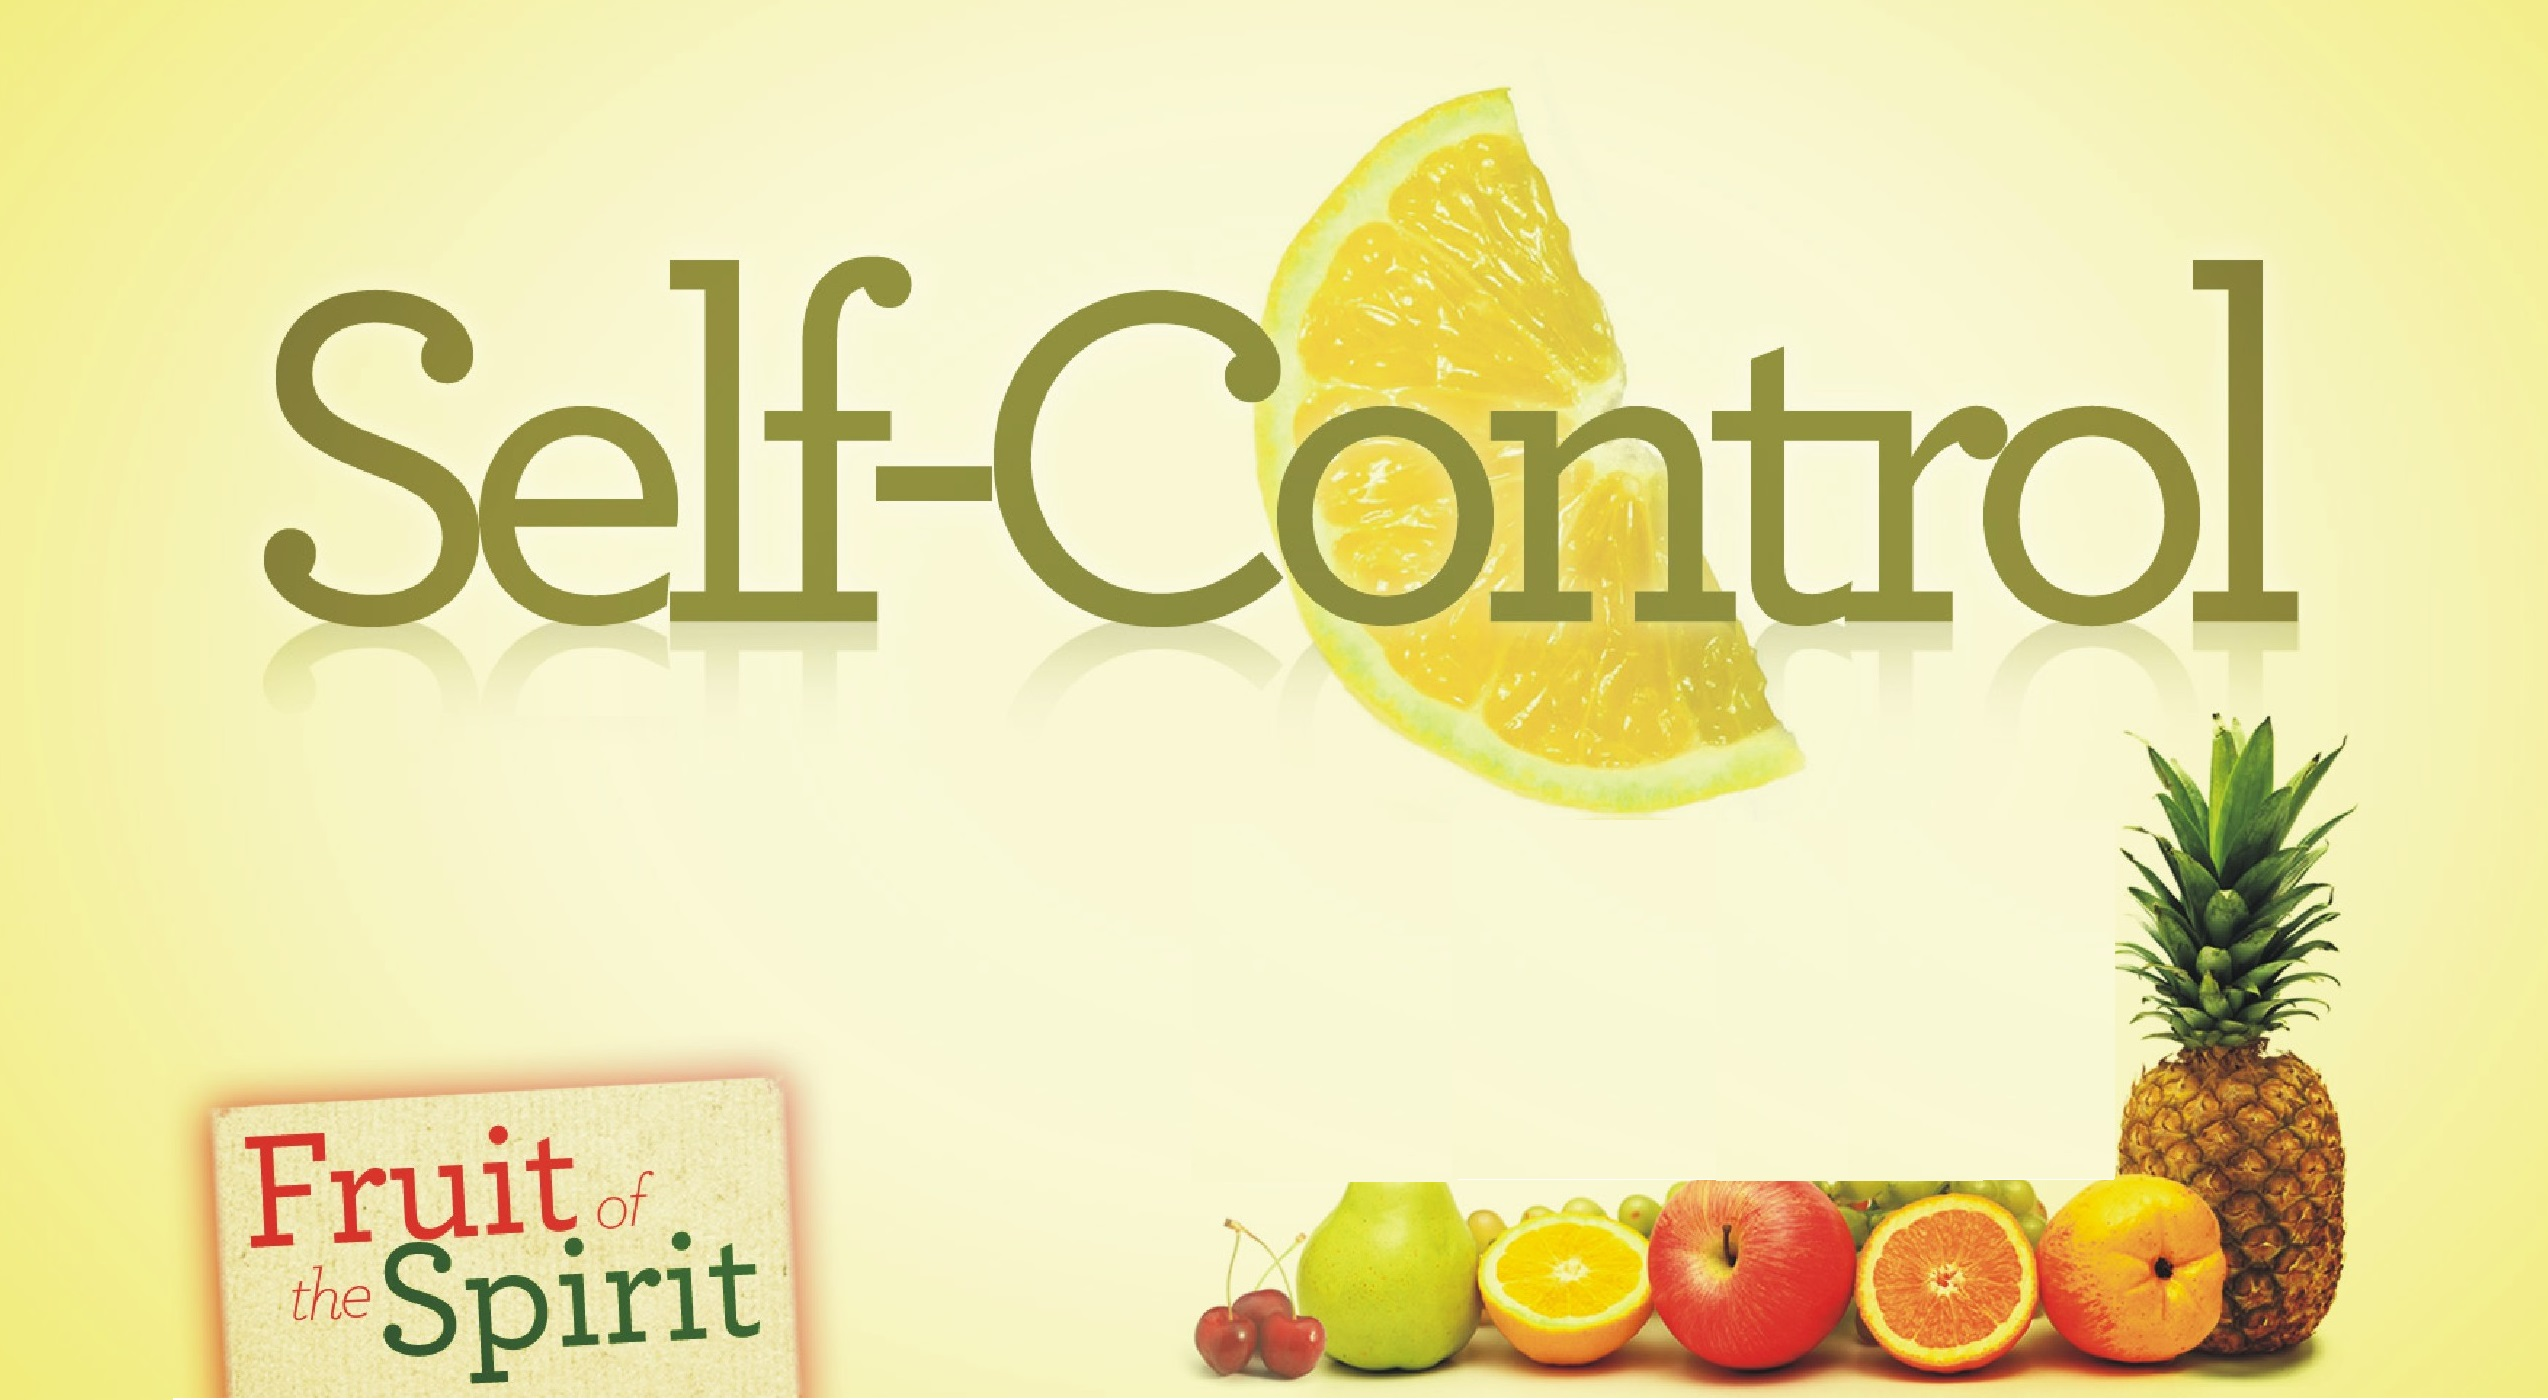 Self-Control - Fruit of the Spirit (Jeremy Bowling)